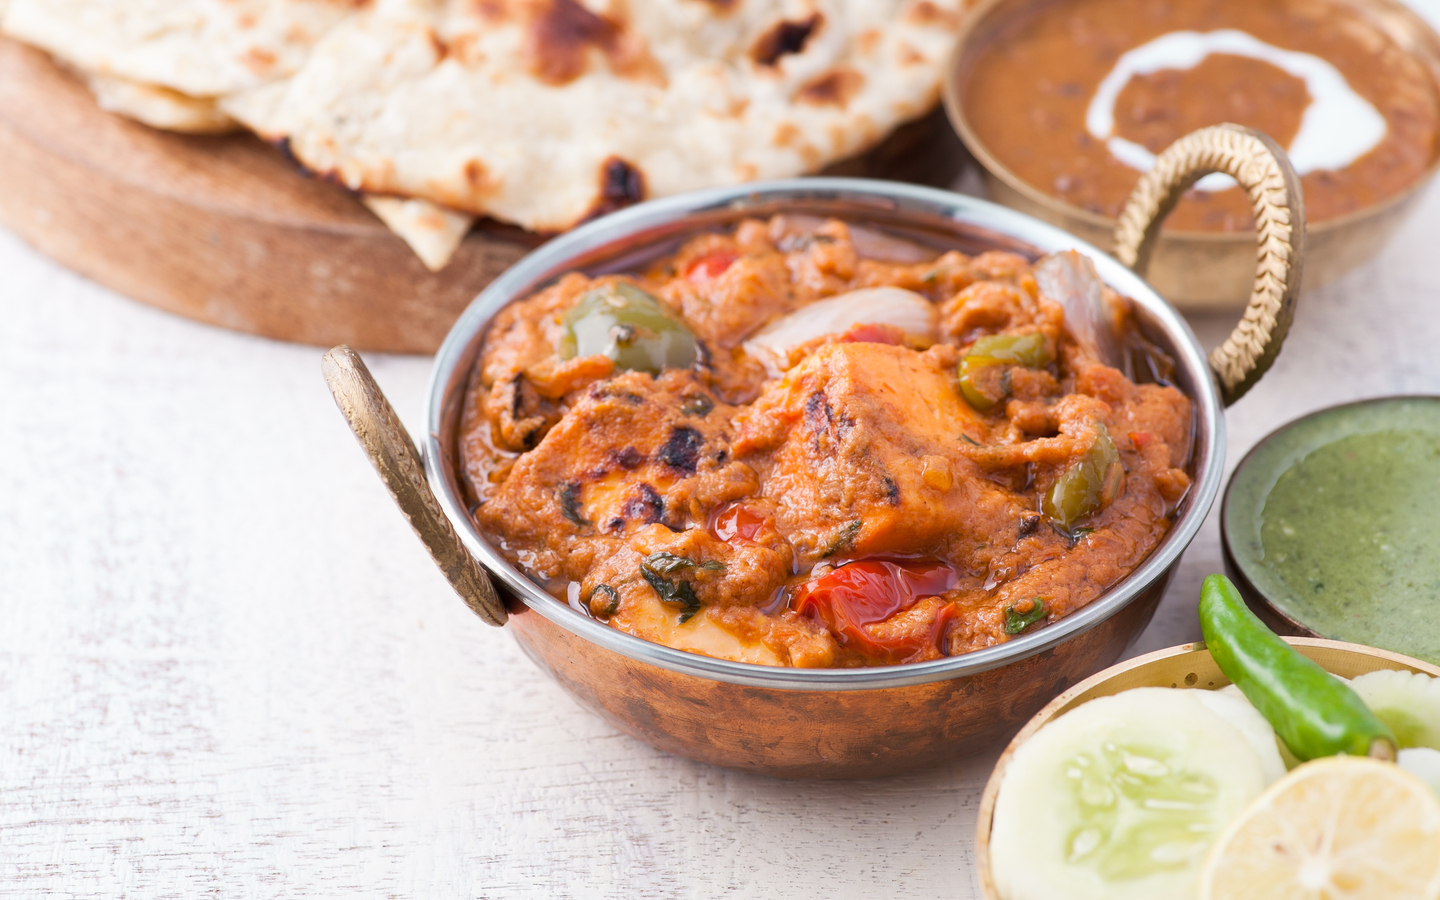 You can enjoy Paneer Tikka Masala at one of the best Indian restaurants in Business Bay.